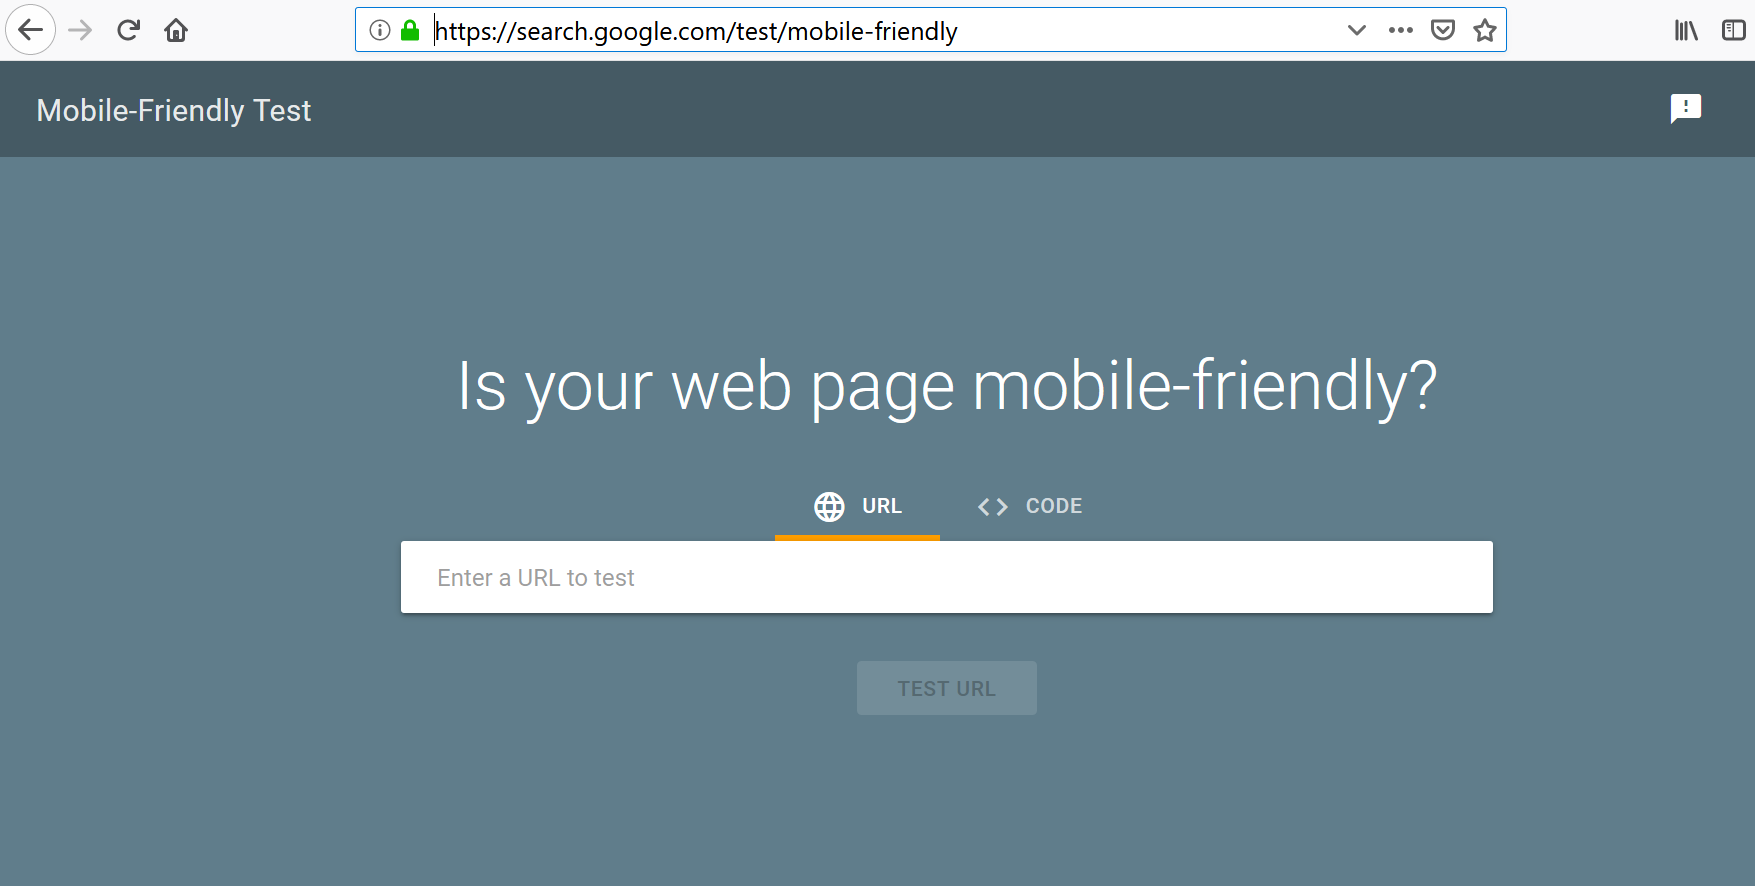 Testing webpage mobile-friendliness using a tool